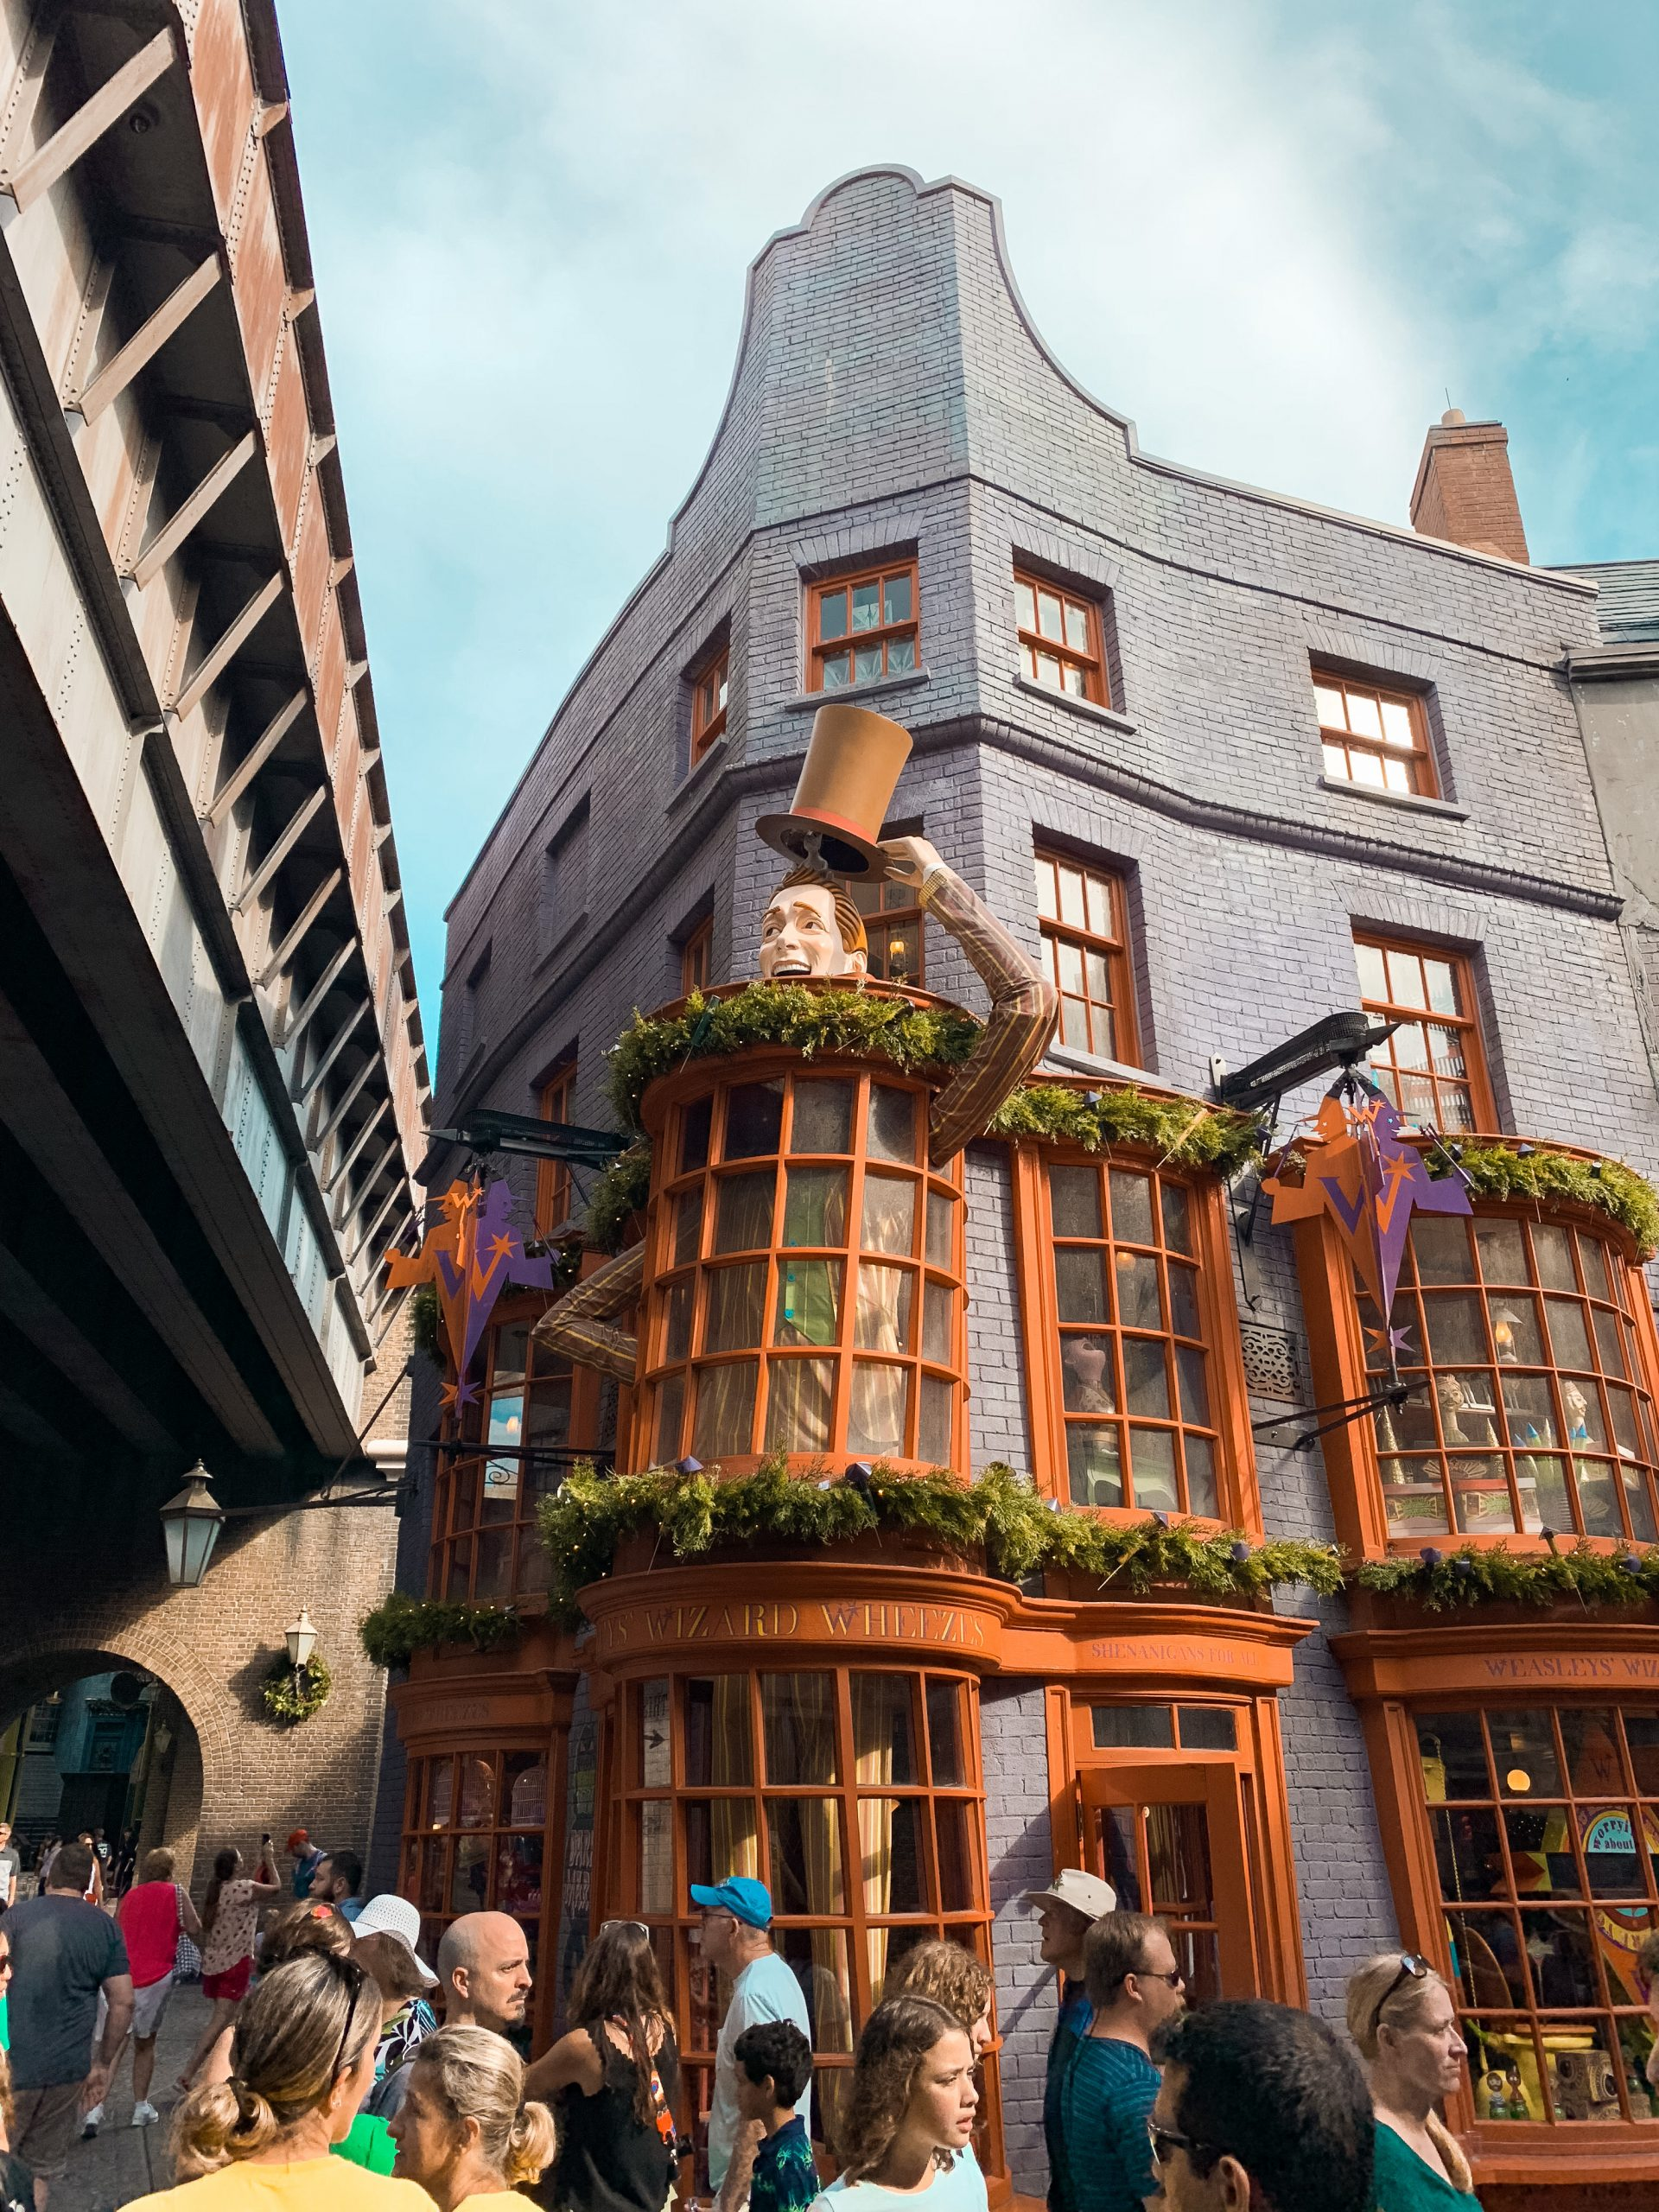 Weasley's Wizarding Wheezes at Wizarding World of Harry Potter